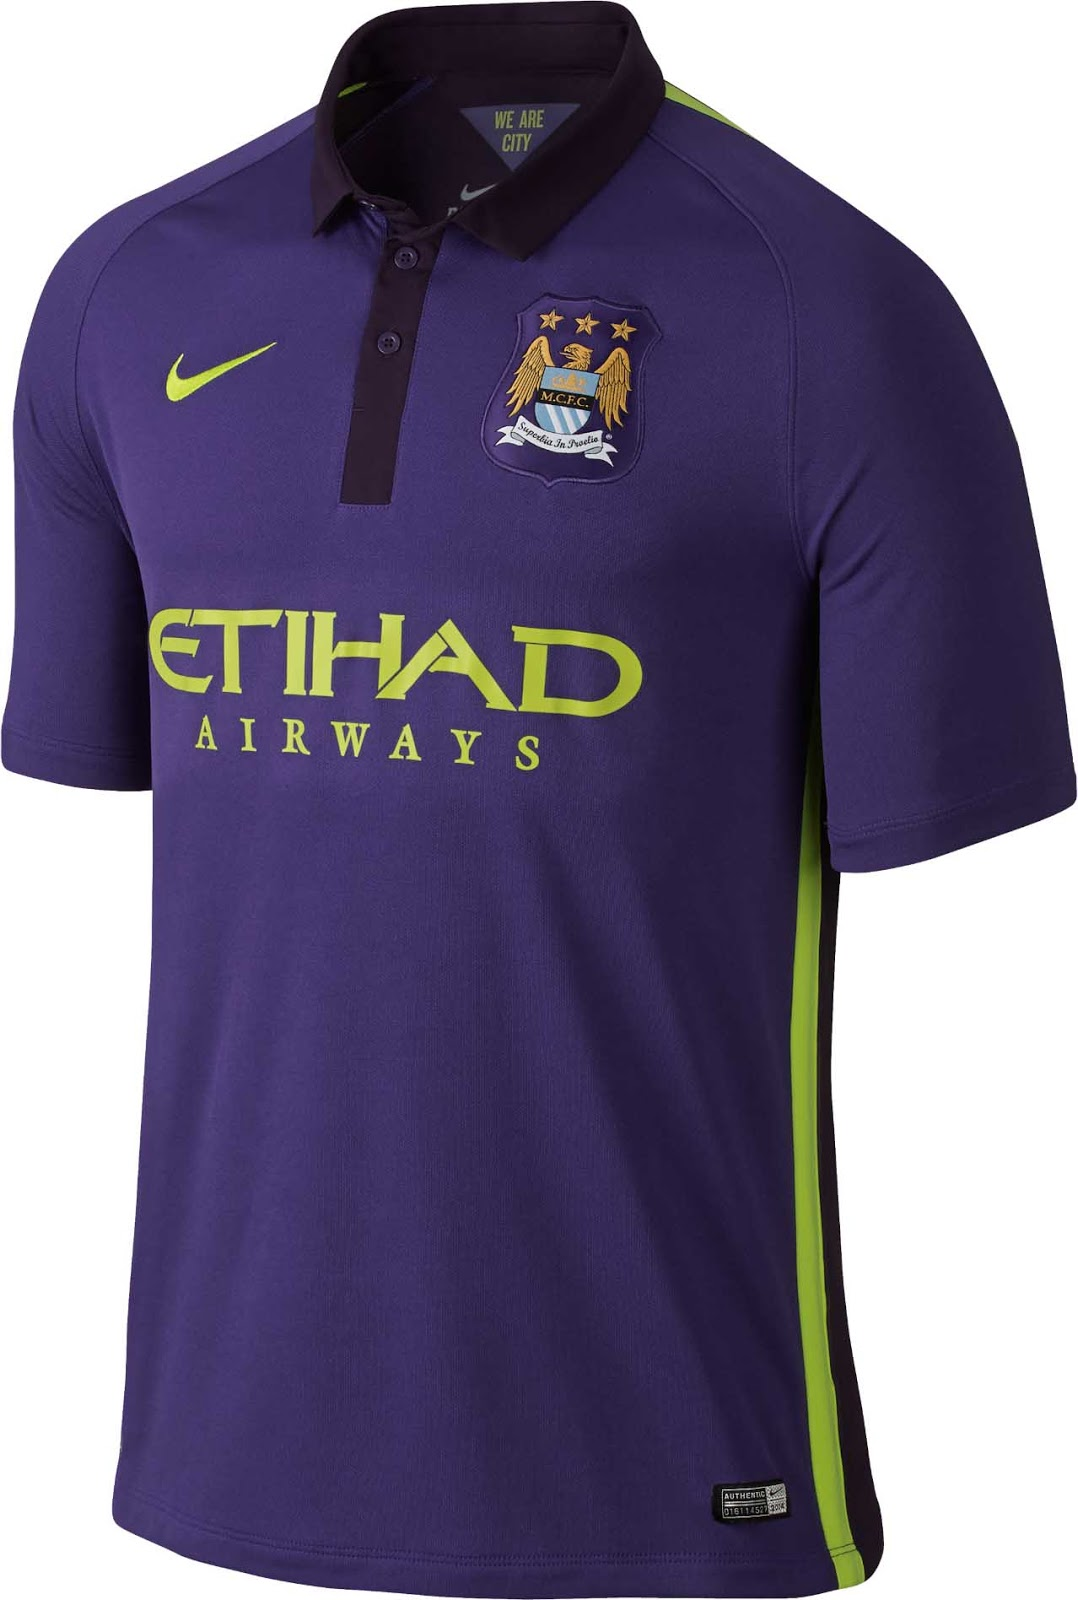 Manchester City 2014-2015 Local, Visita y alterno .